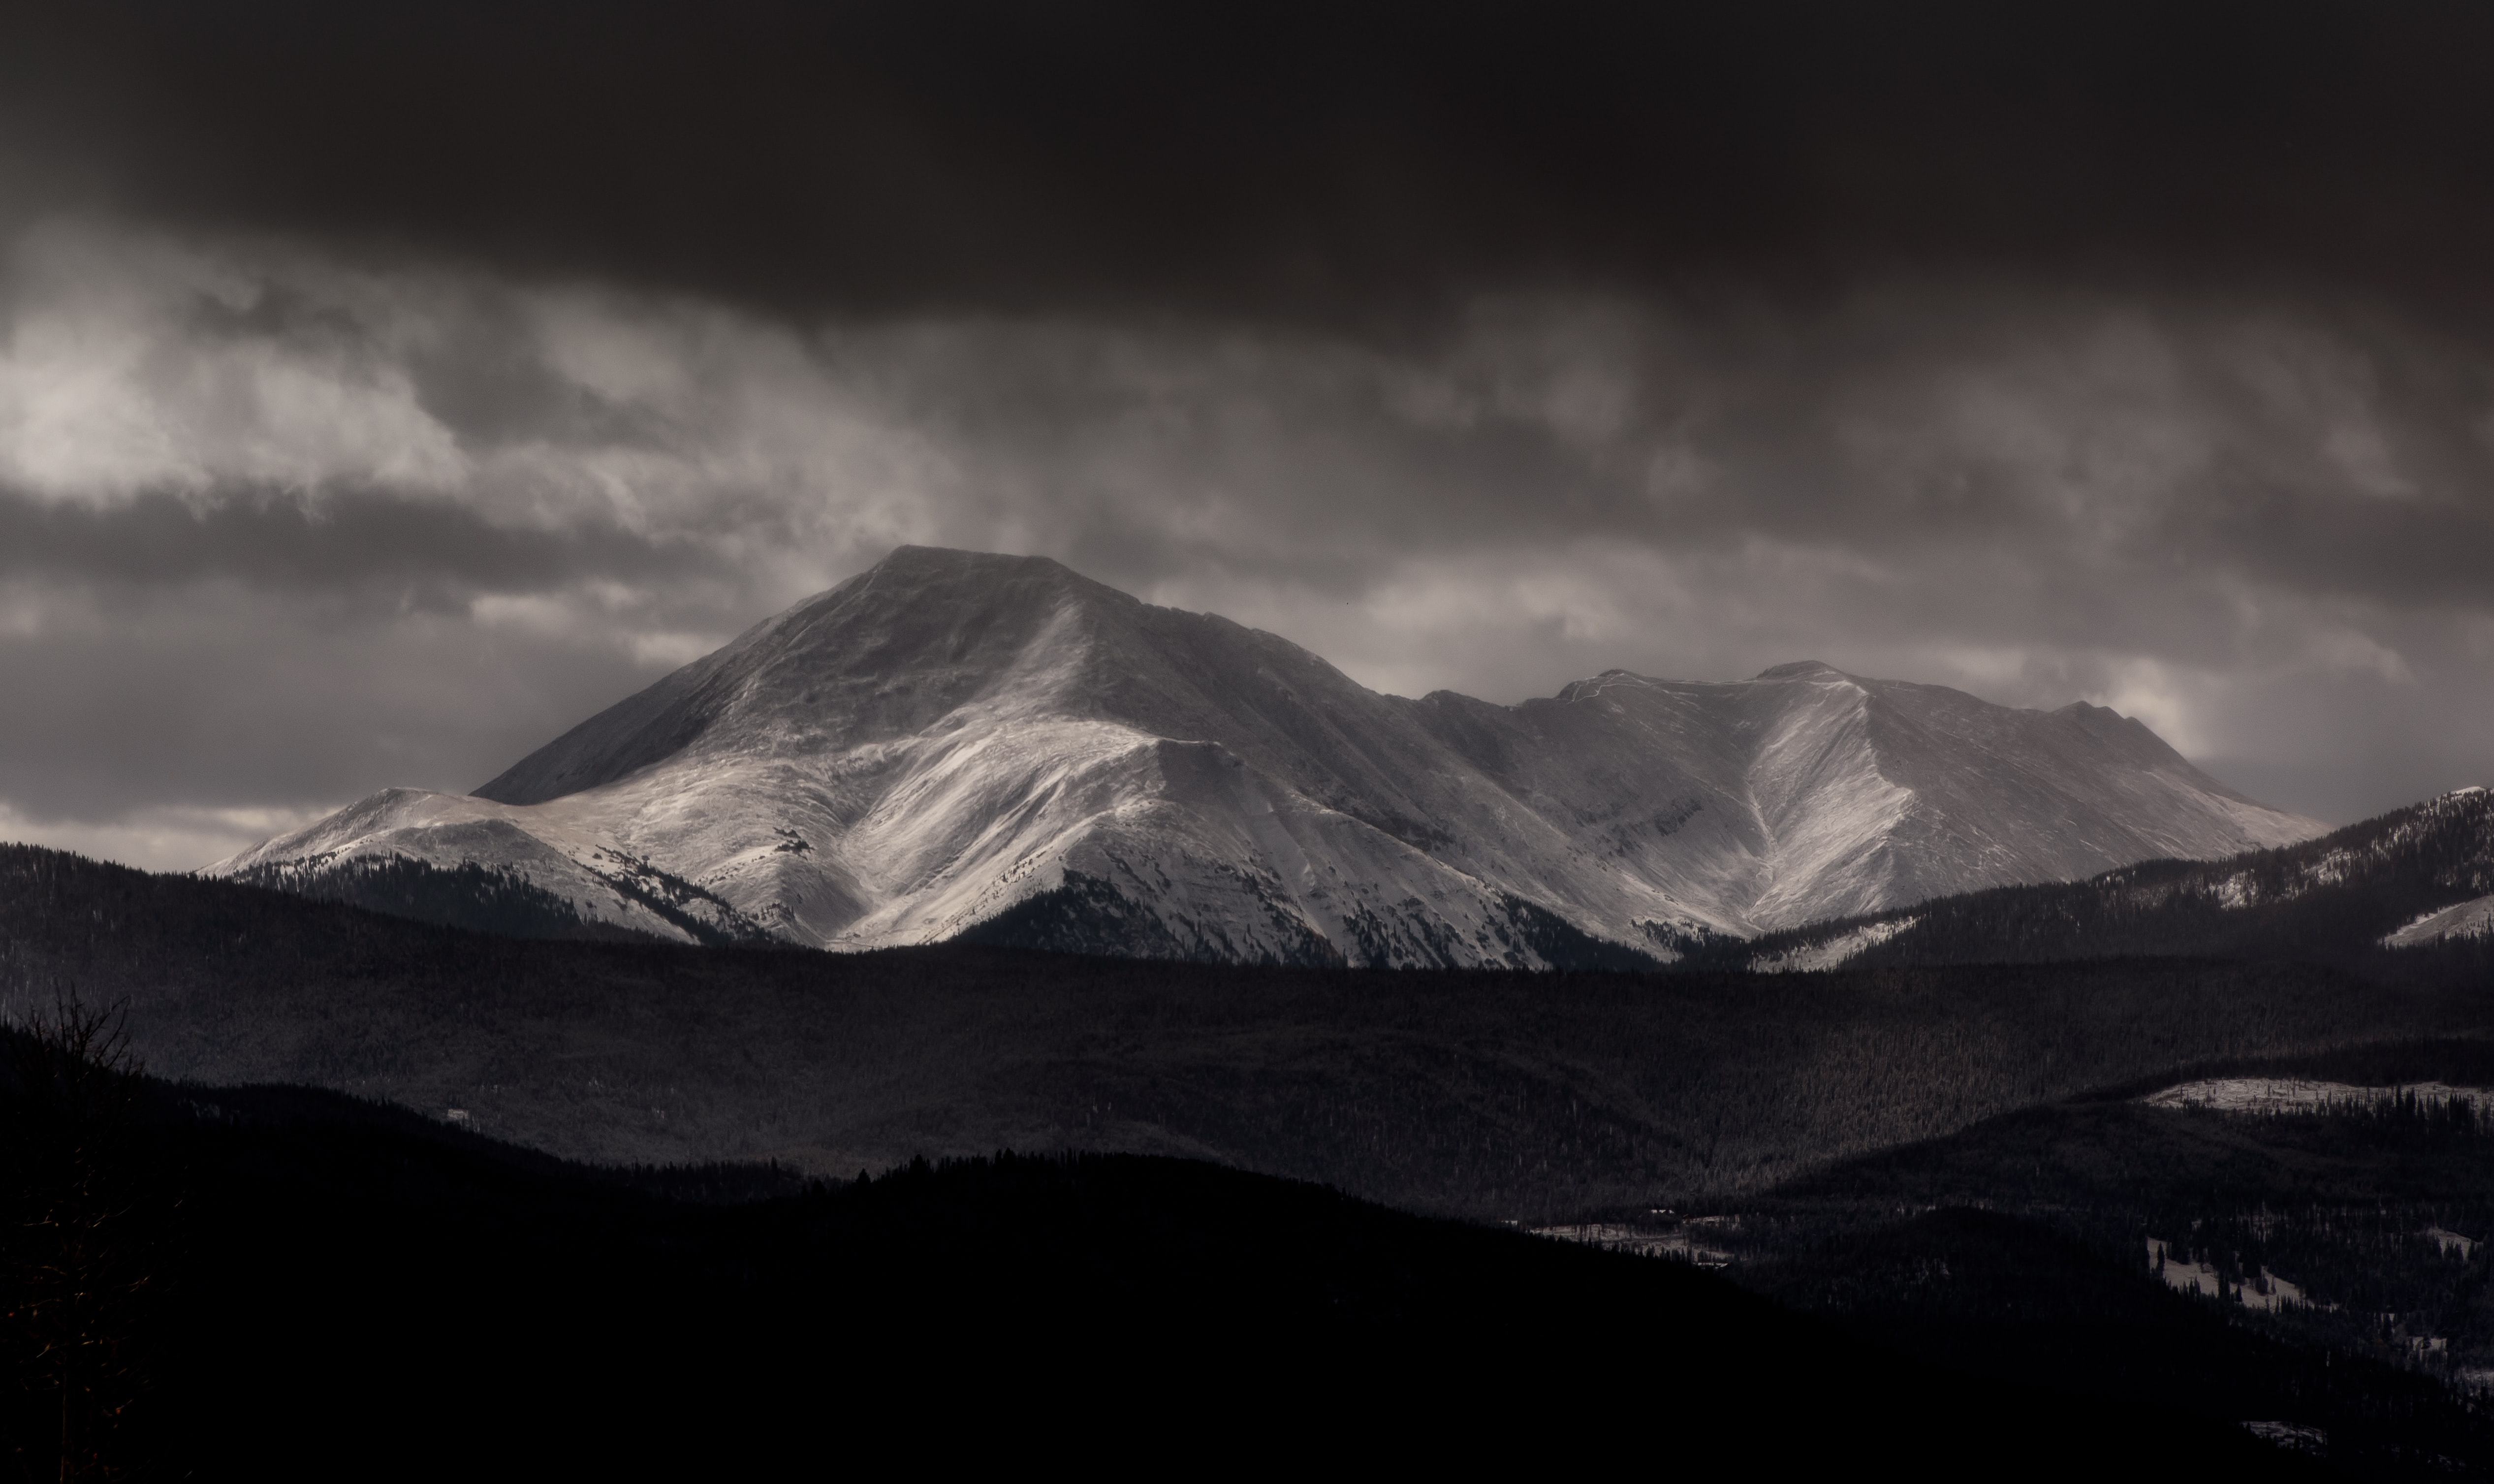 A black-and-white photo of a mountain range under clouds in Silverthorne